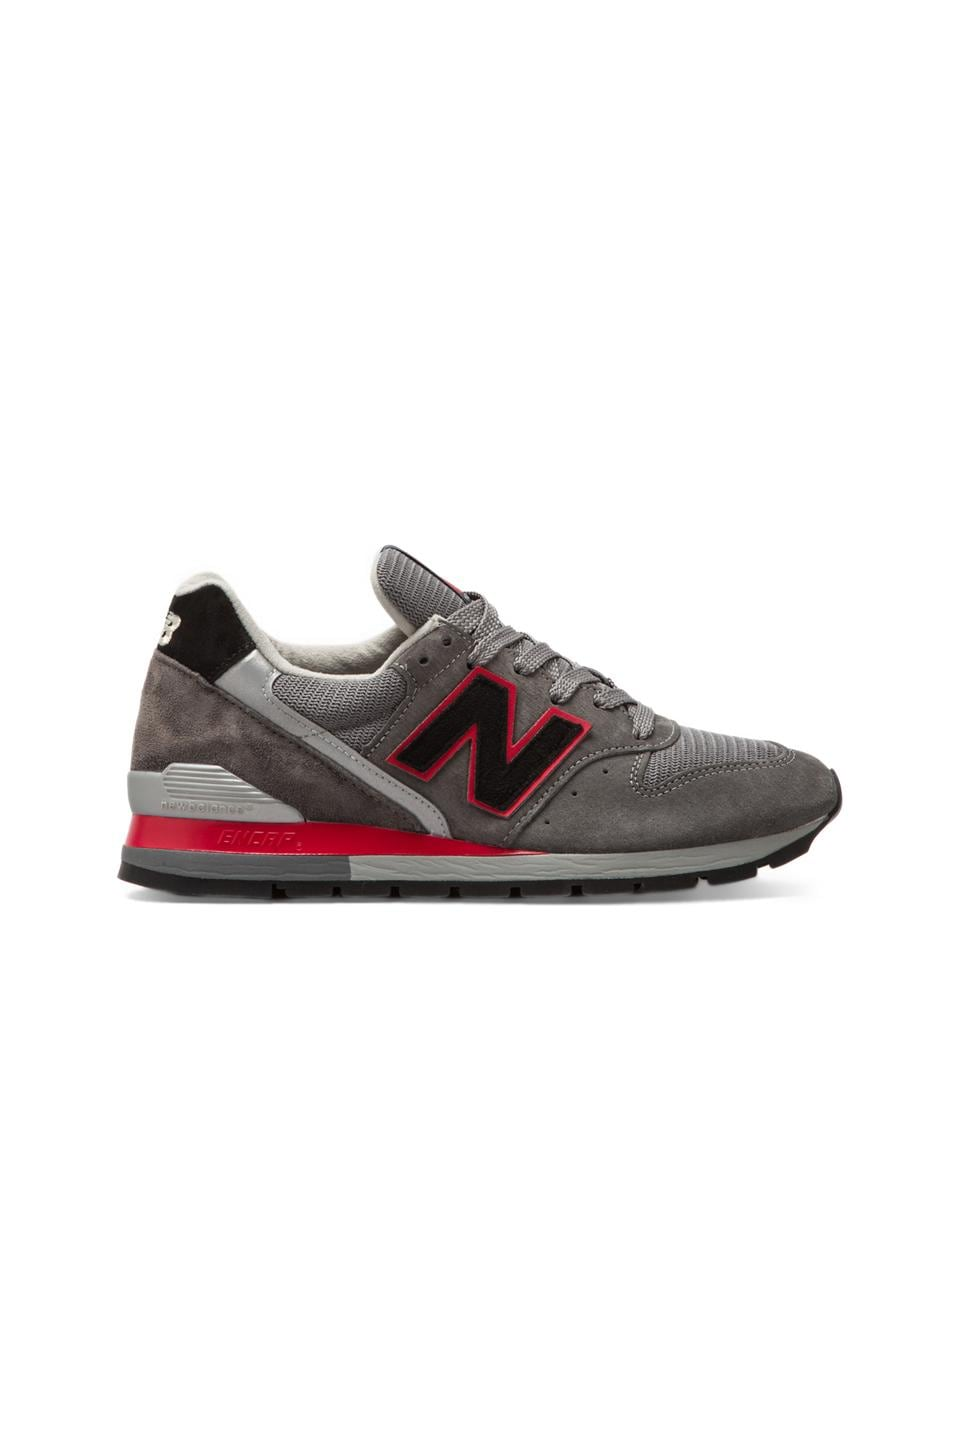 New Balance Made in the USA M996 in Dark Grey